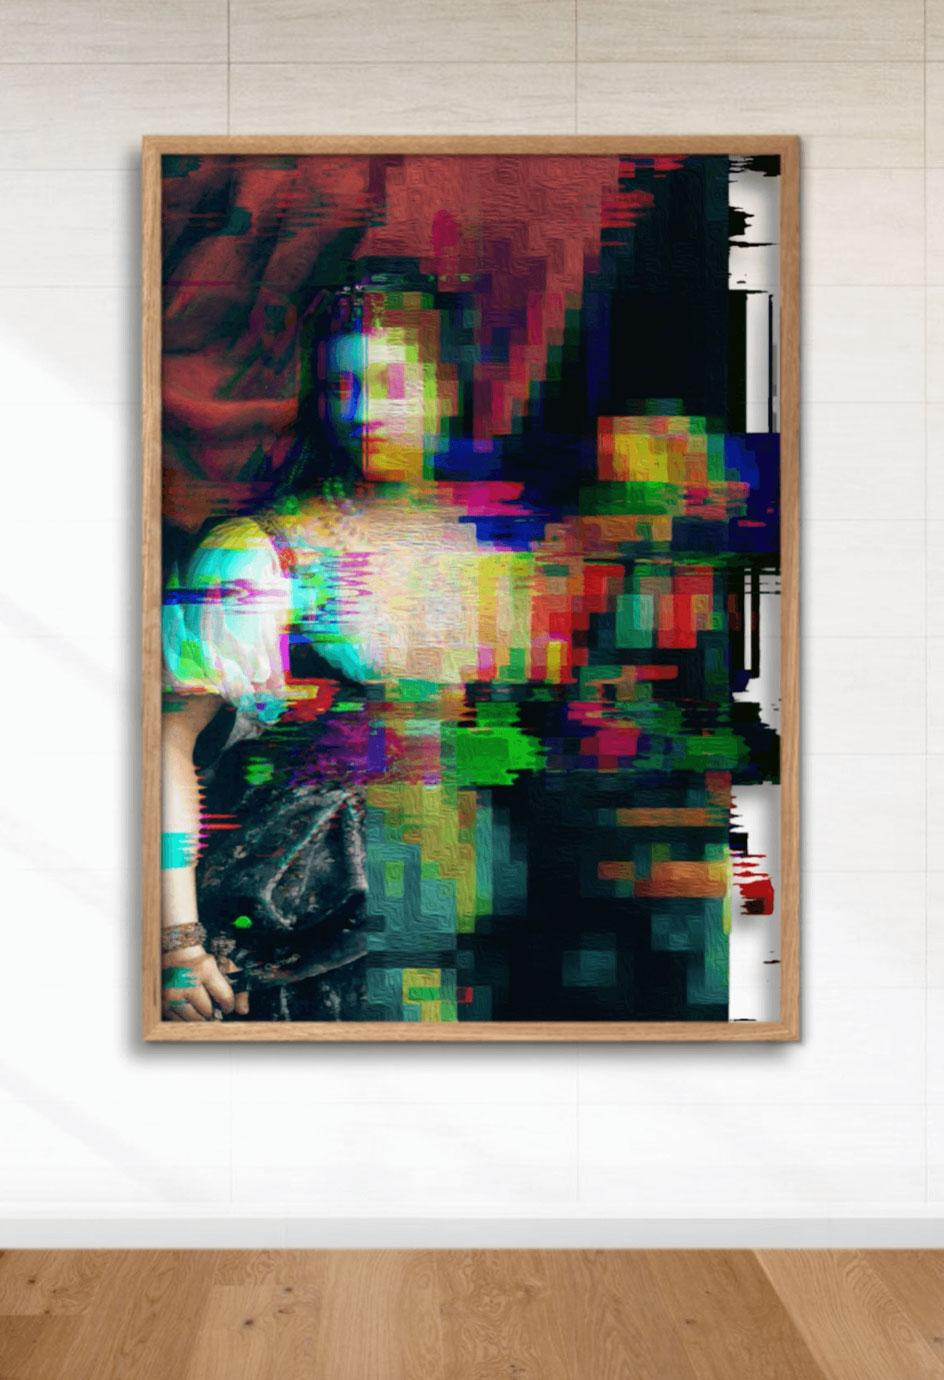 Part of Christie's NFT Art auction, Portrait of a pixelated woman in Rewind Collective's Remember Us IV (Watch Your Head), non-fungible token (.mp4